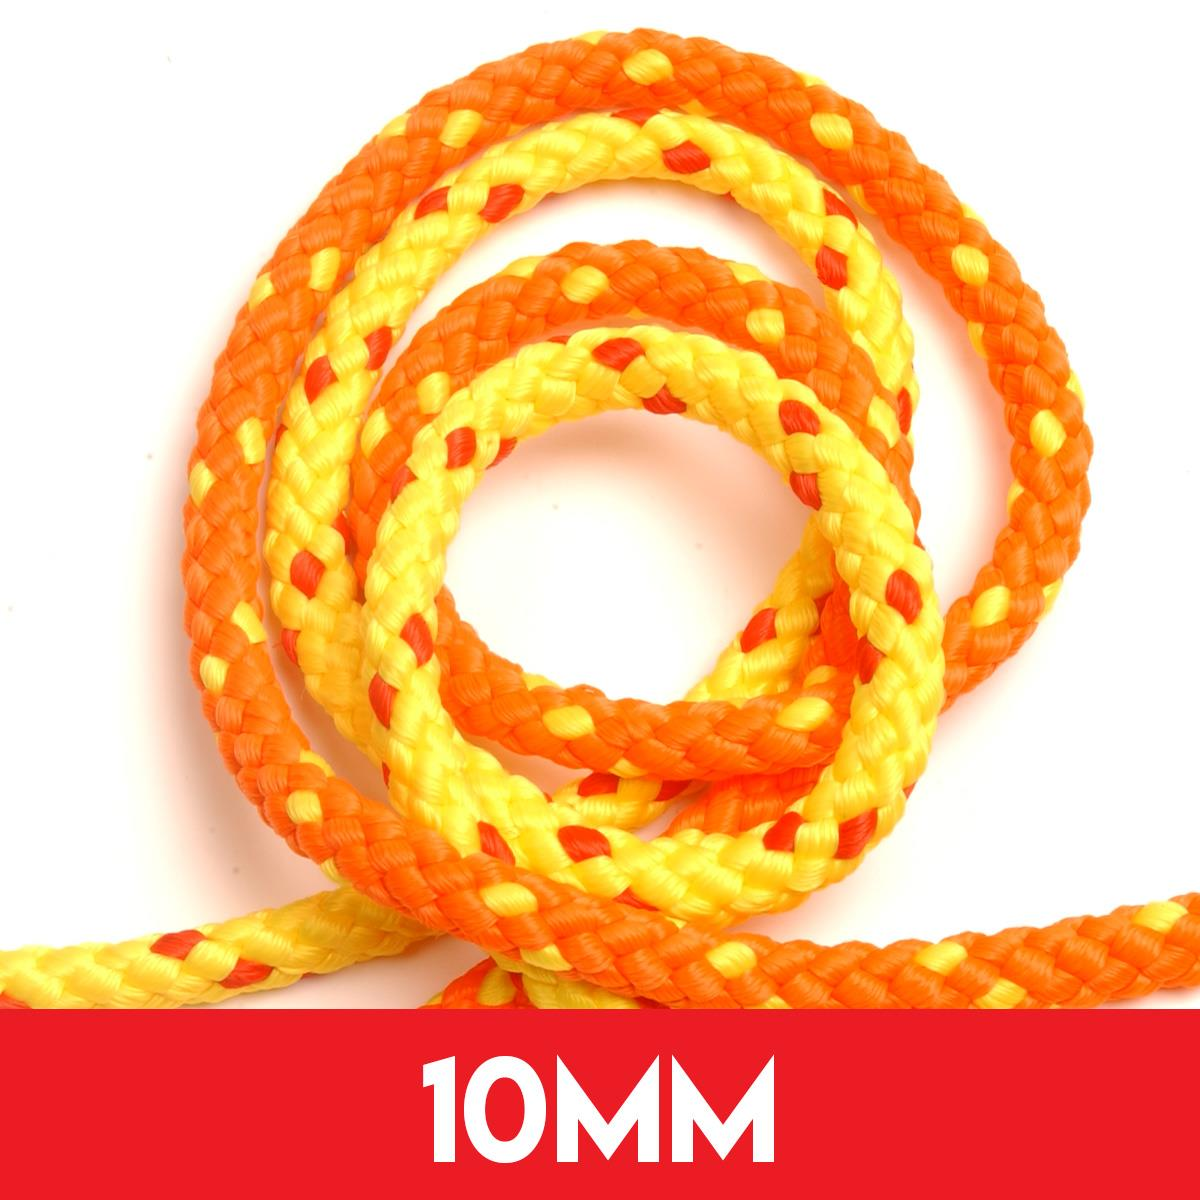 10mm Floatline Tow Rope